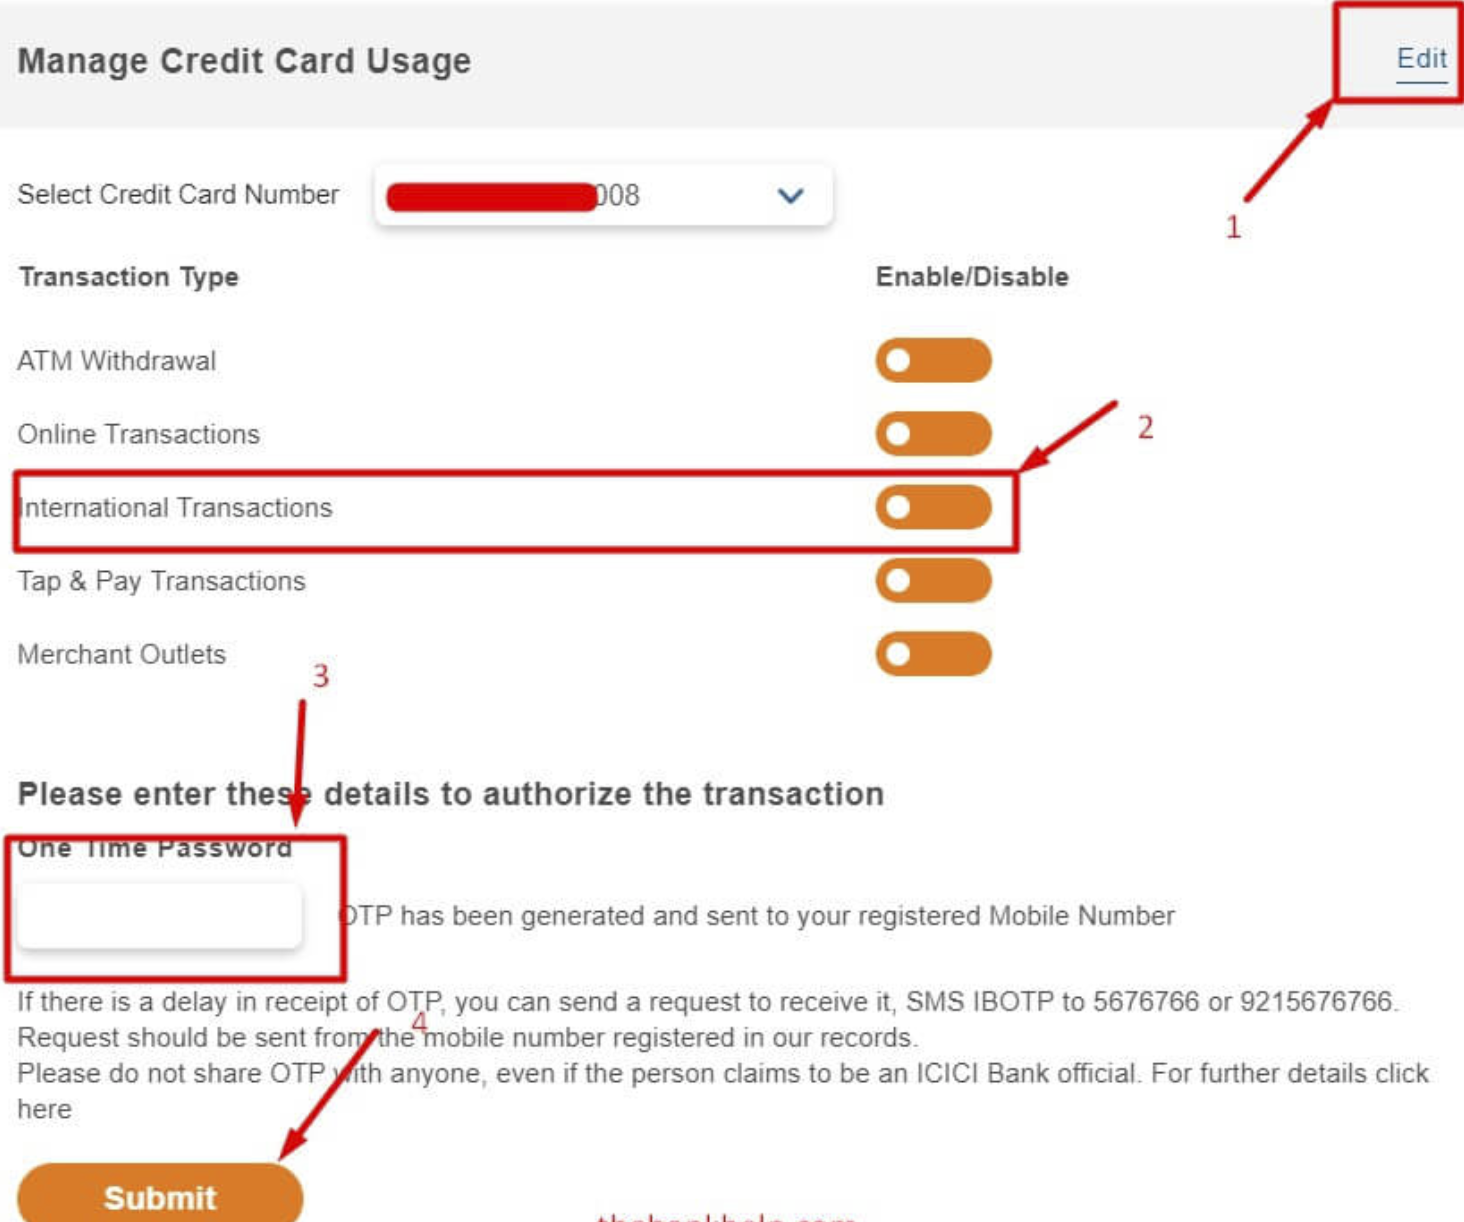 Enable Card for Overseas Use or International Transactions